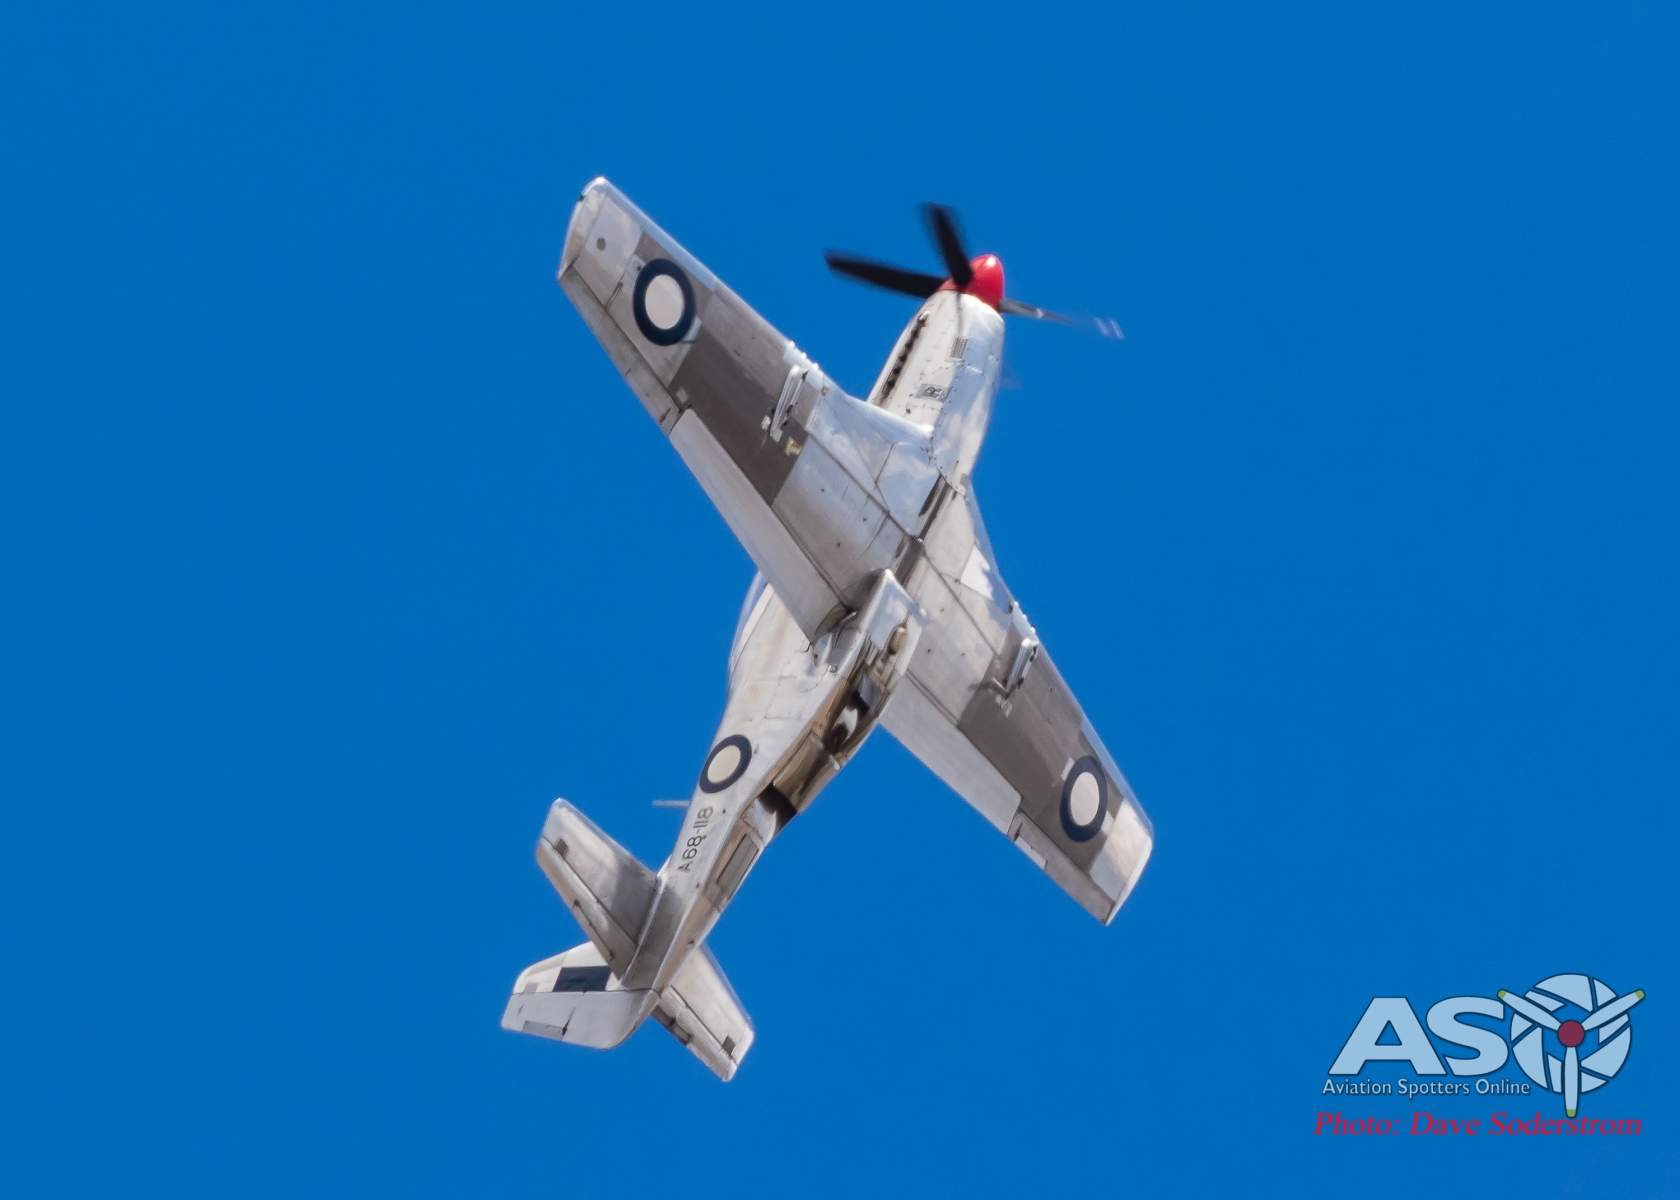 ASO-EDN-Airshow-2019-113-1-of-1